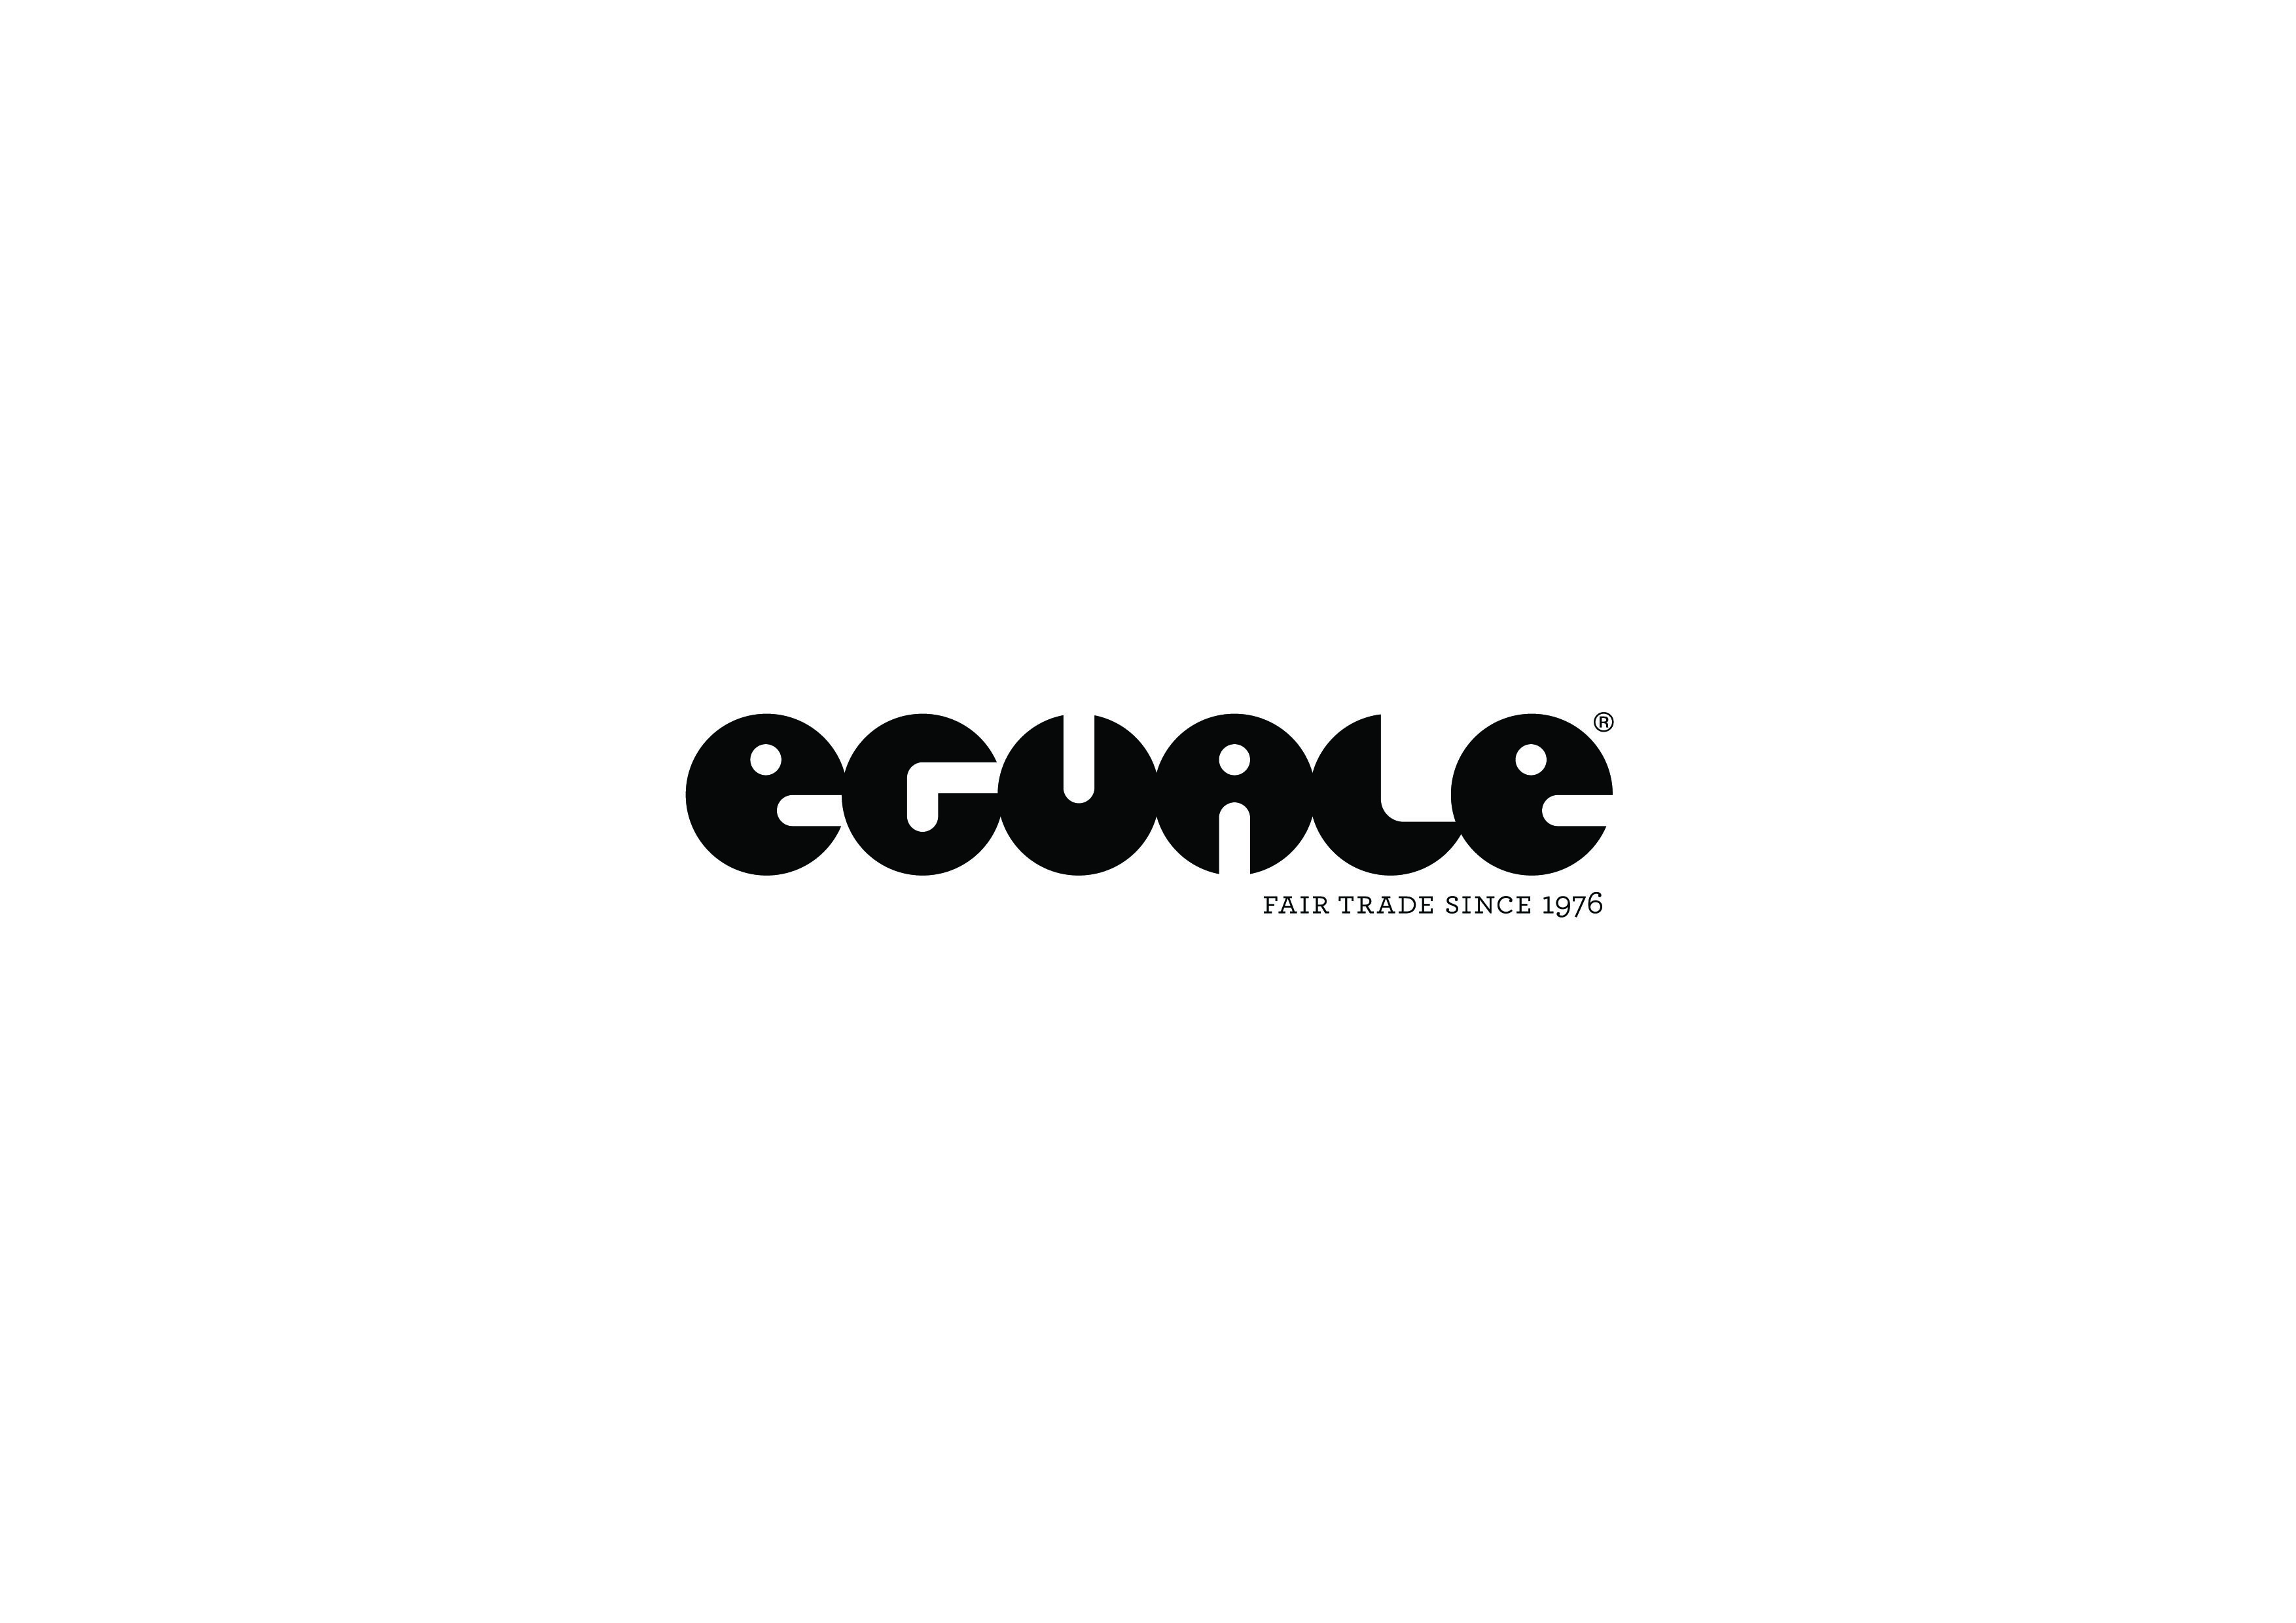 Eguale-01